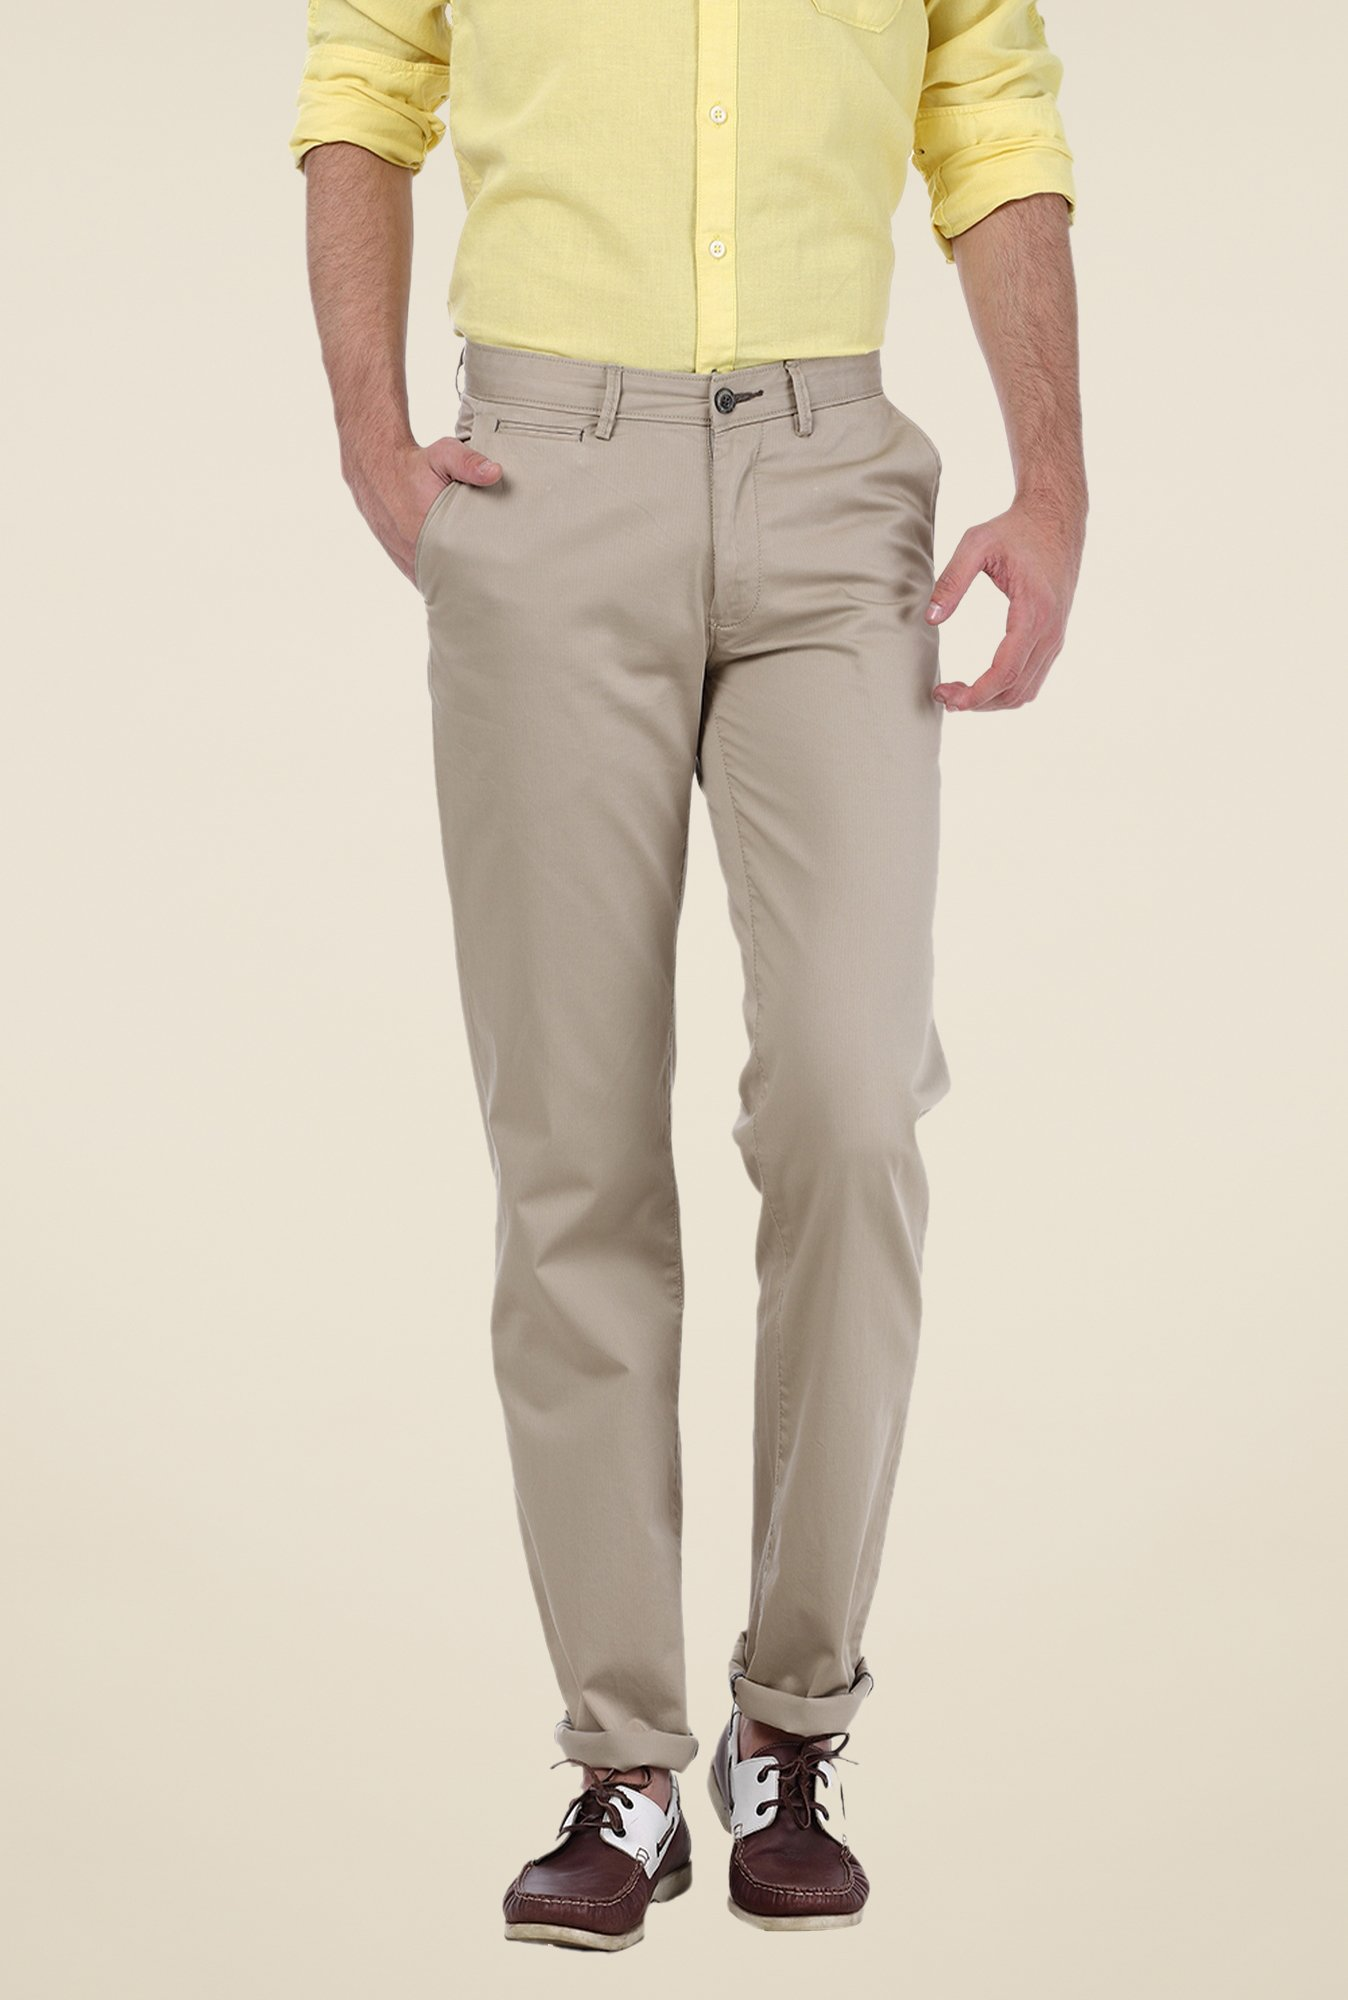 Basics Beige Solid Trousers